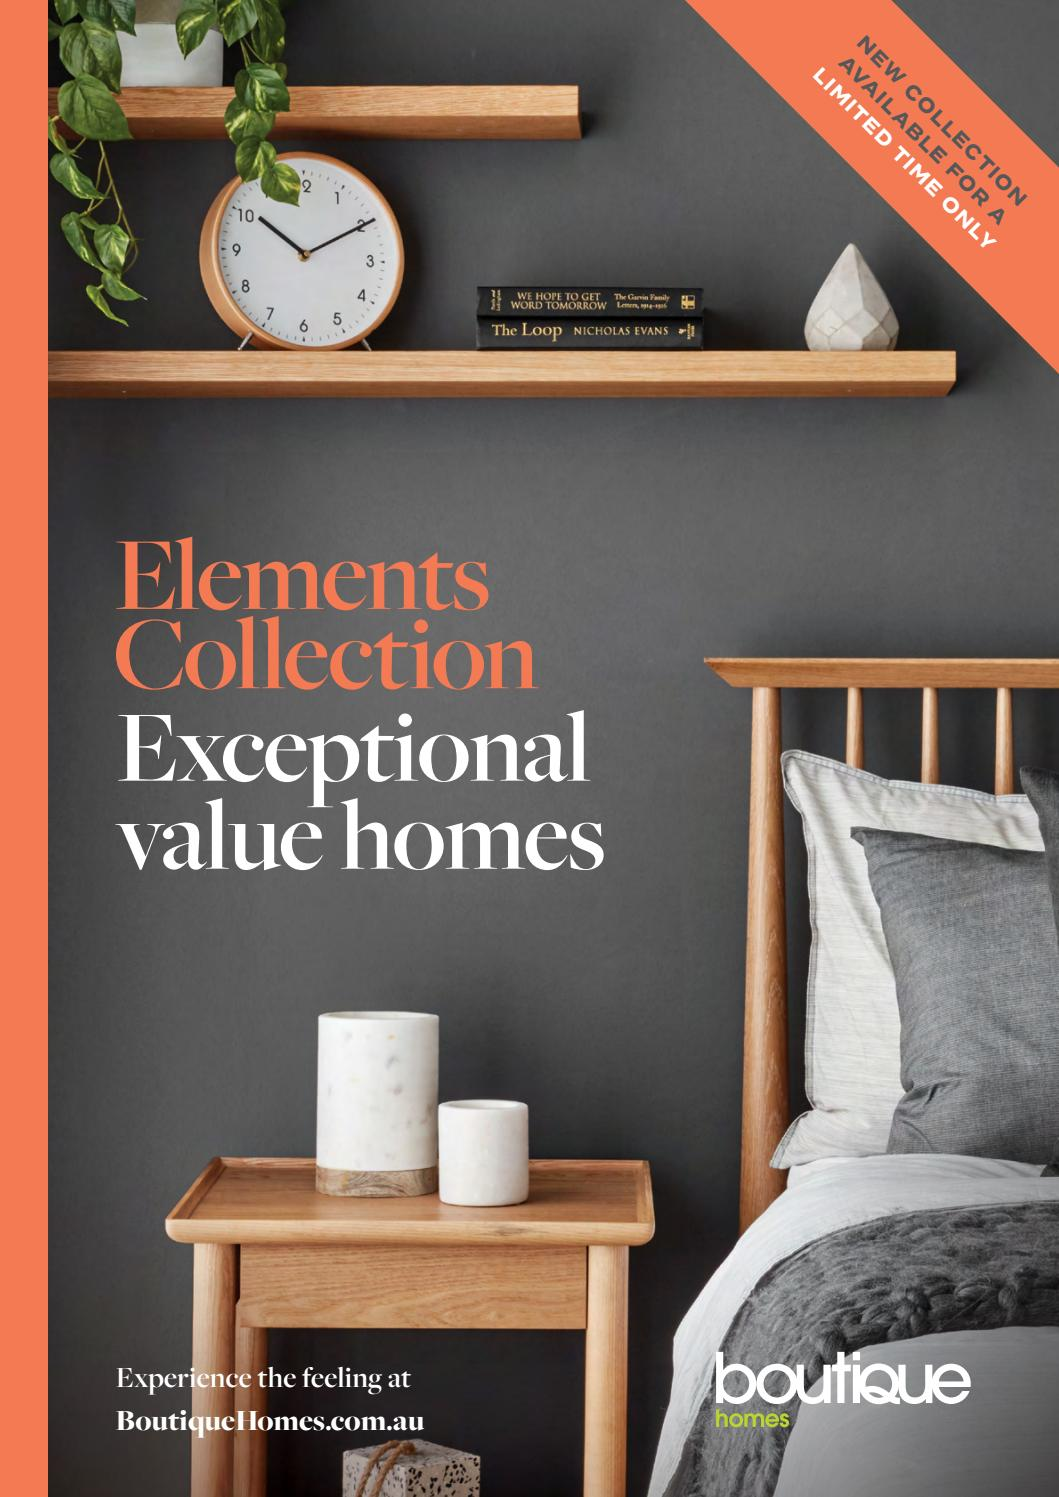 elements collection by boutique homes issuu elements collection by boutique homes